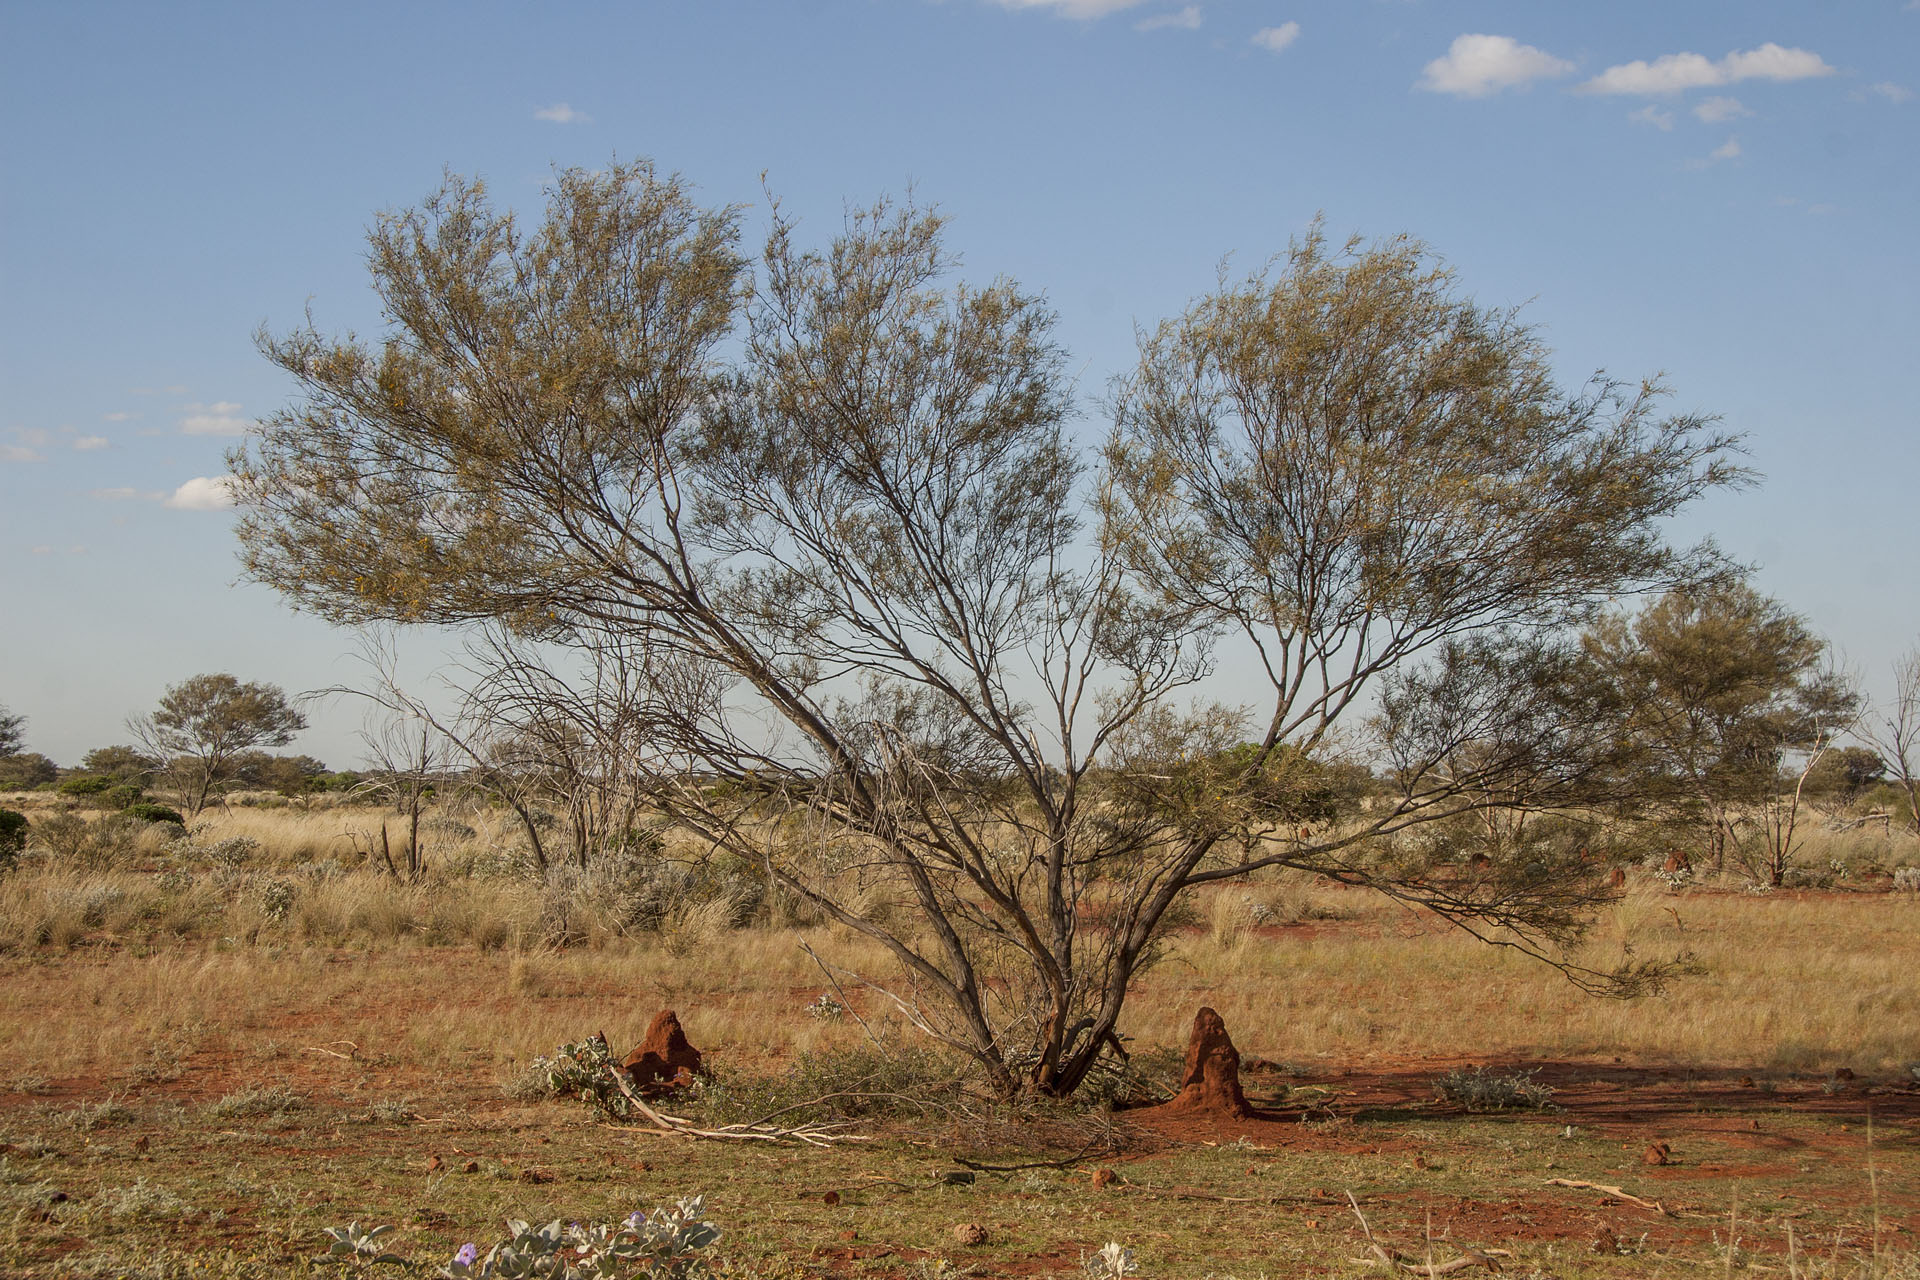 The roadside termite mounds: it's time for them already.